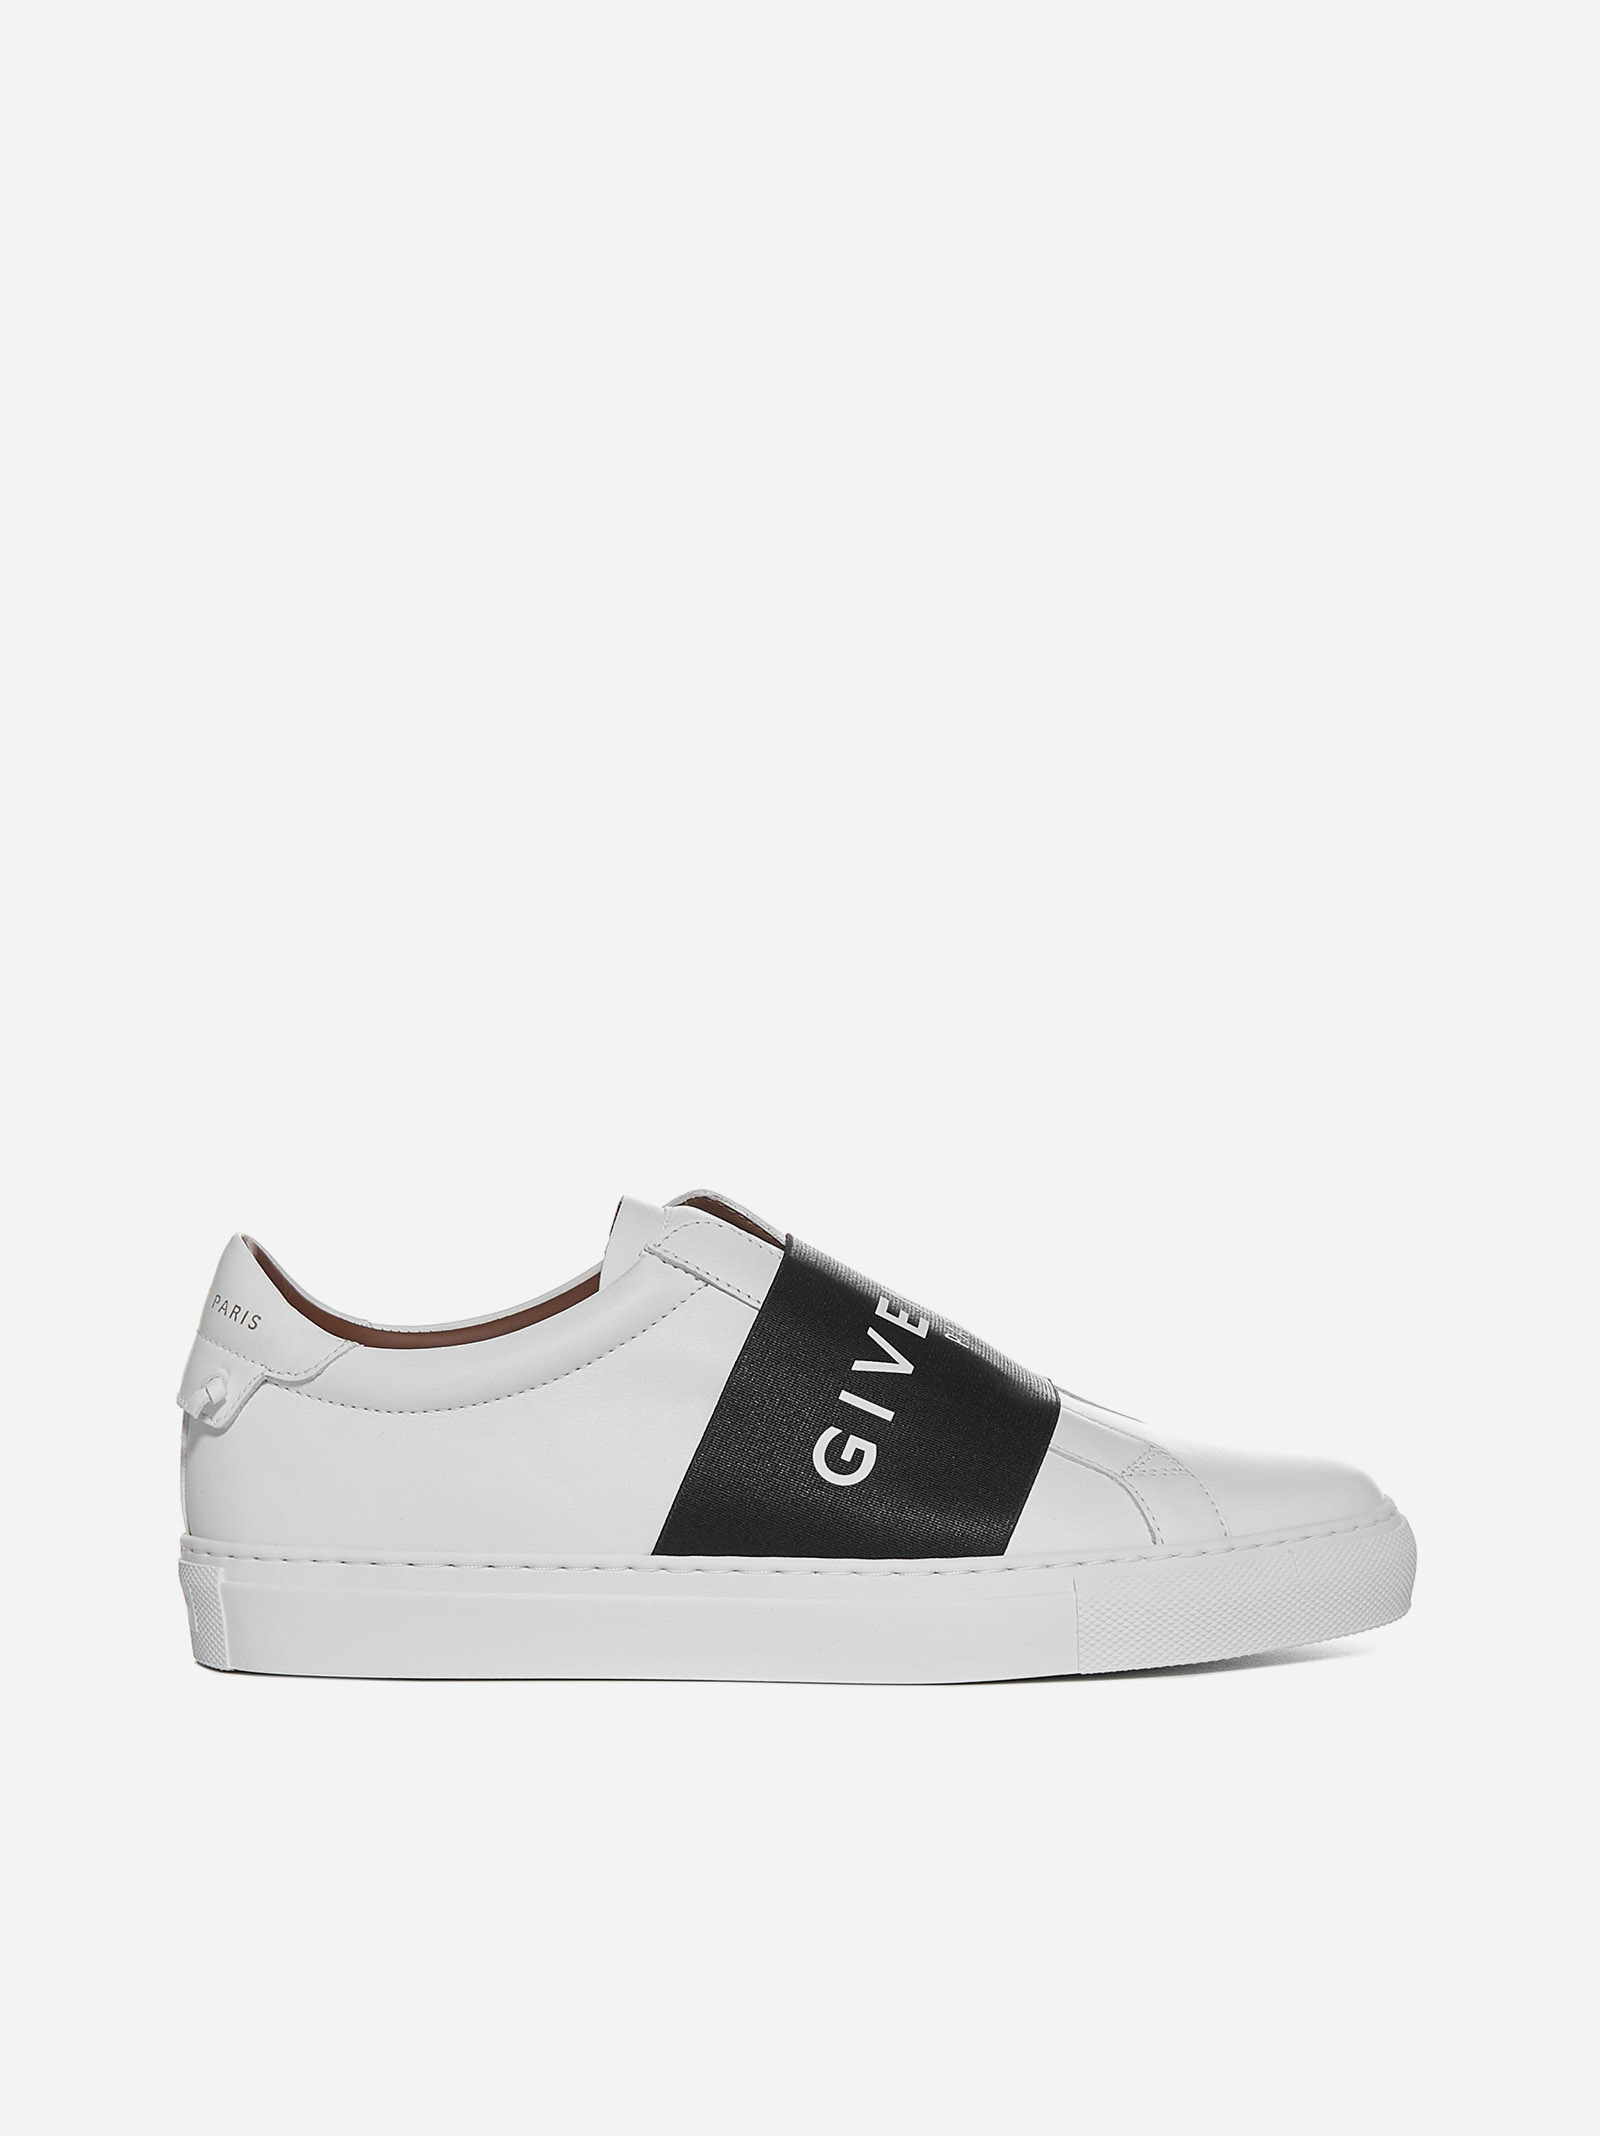 Givenchy URBAN STREET LOGO BAND LEATHER SNEAKERS